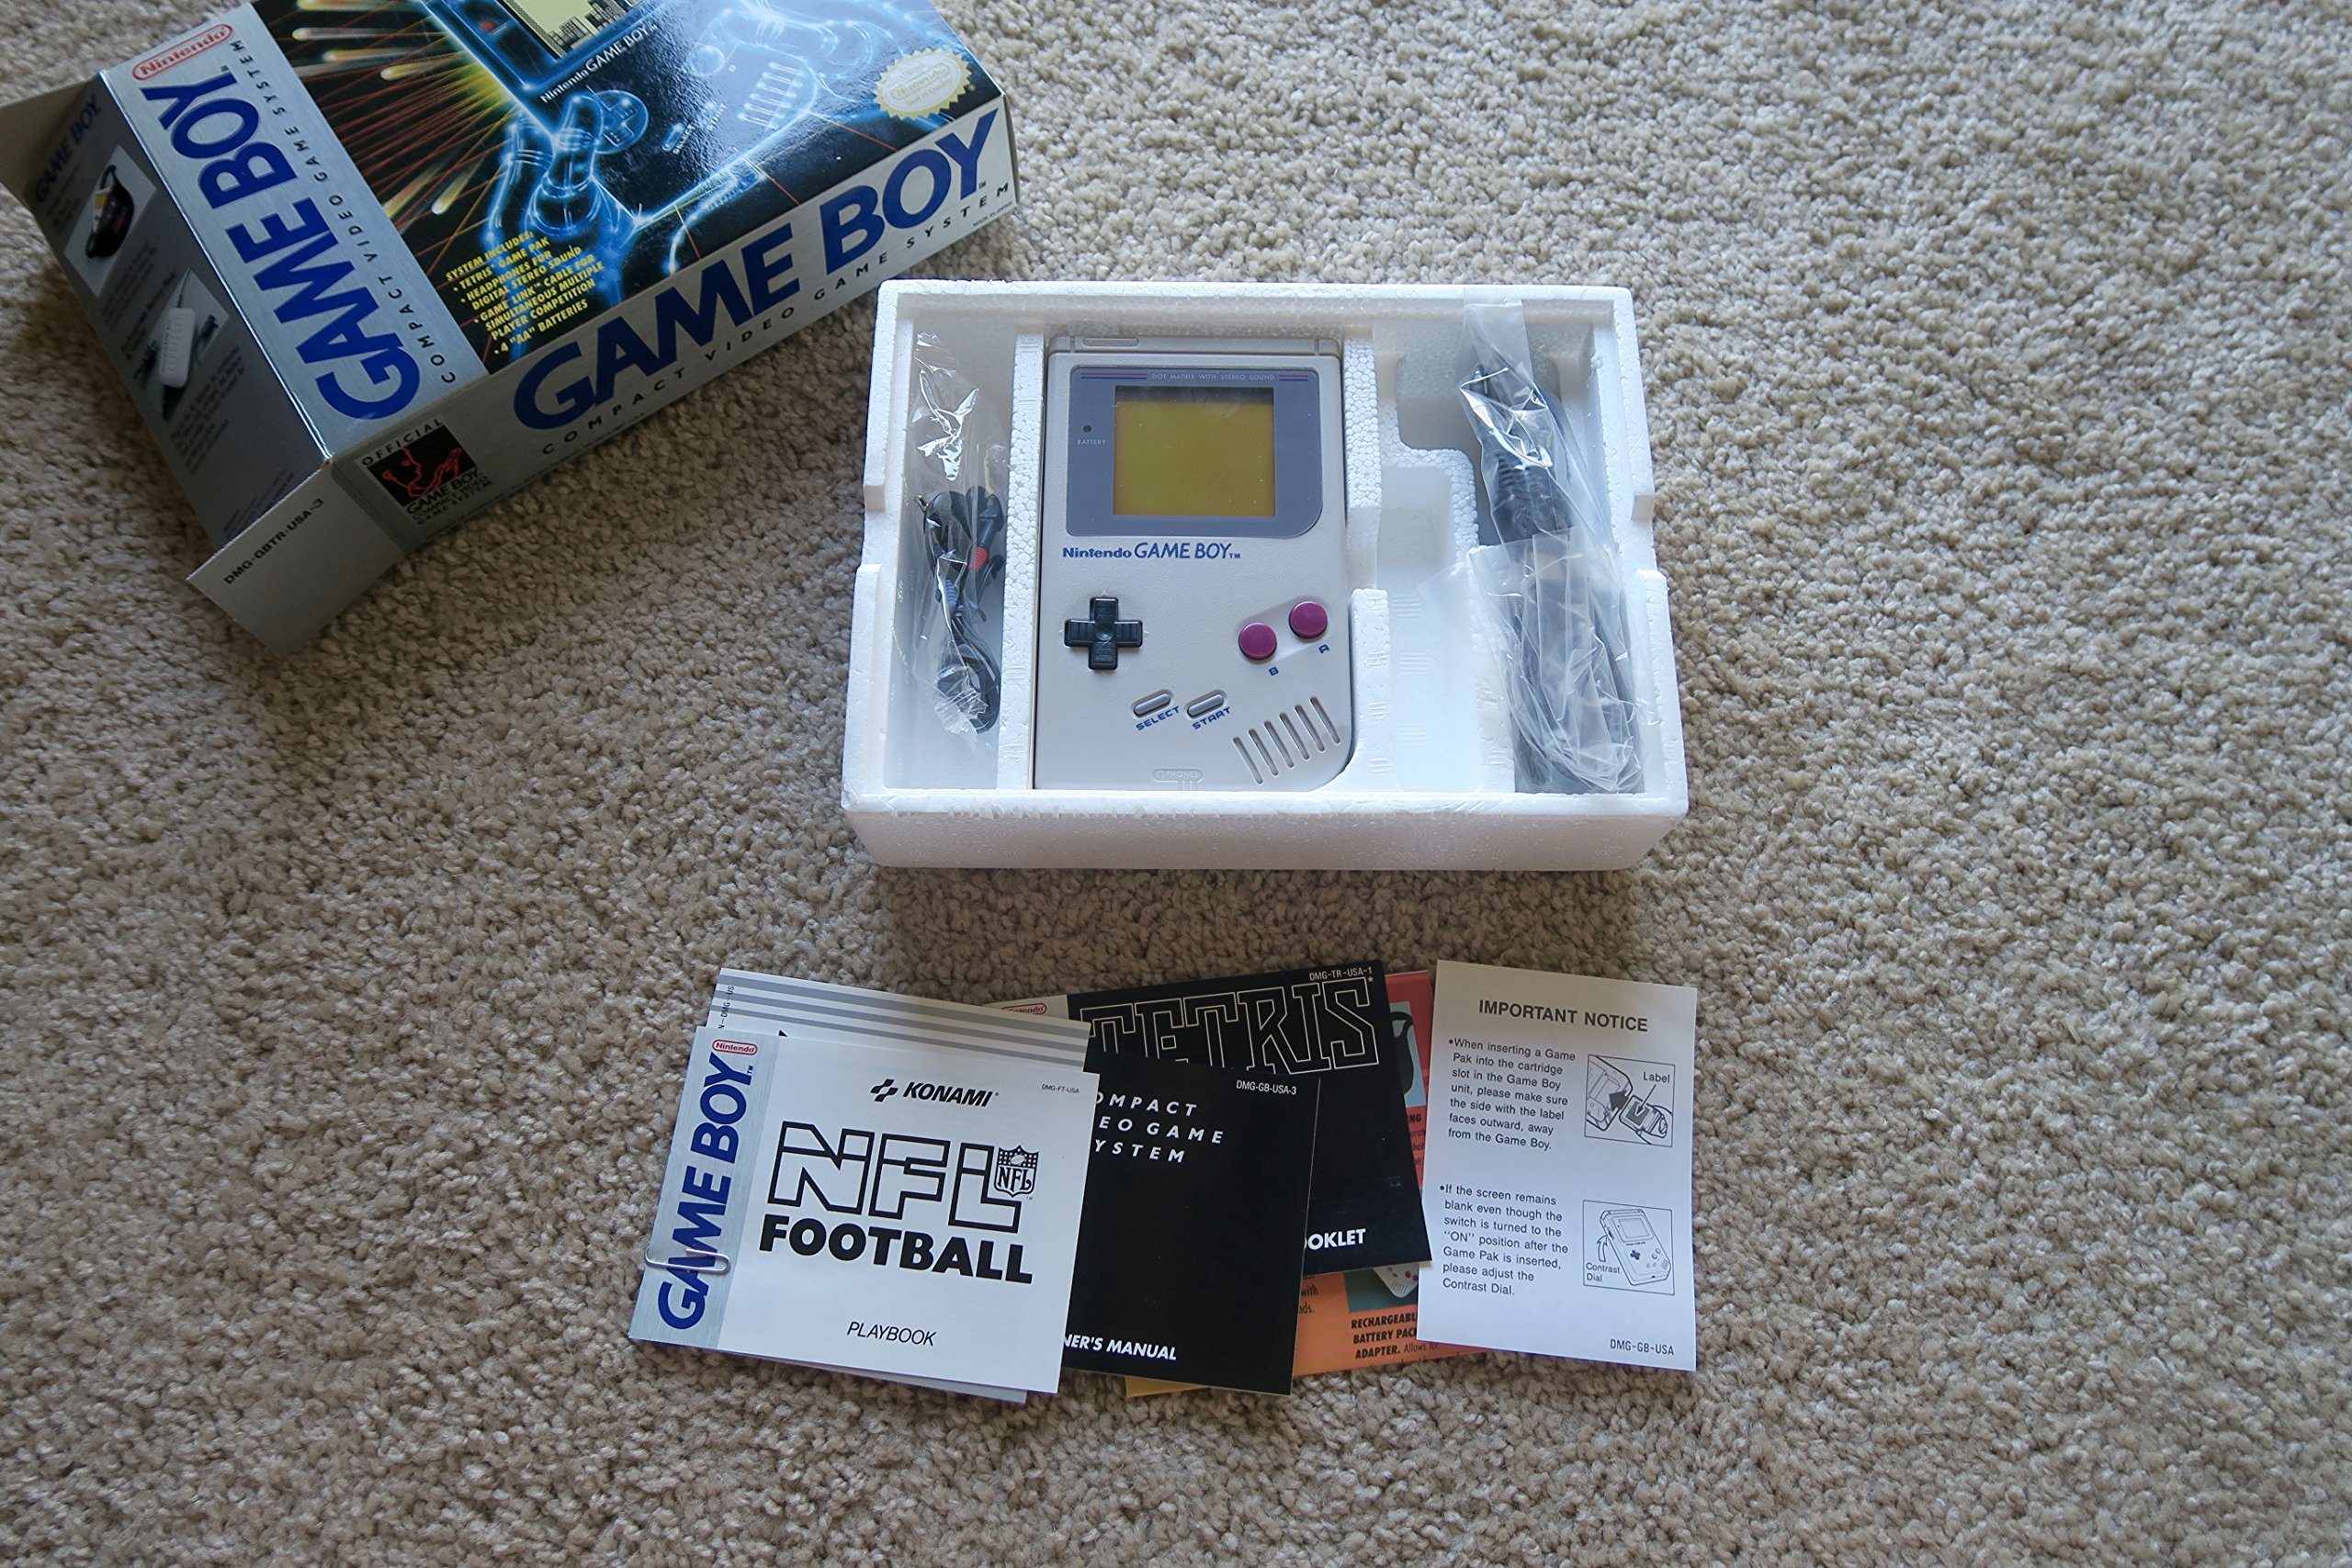 Game boy color list - Image Unavailable Image Not Available For Color Nintendo Game Boy